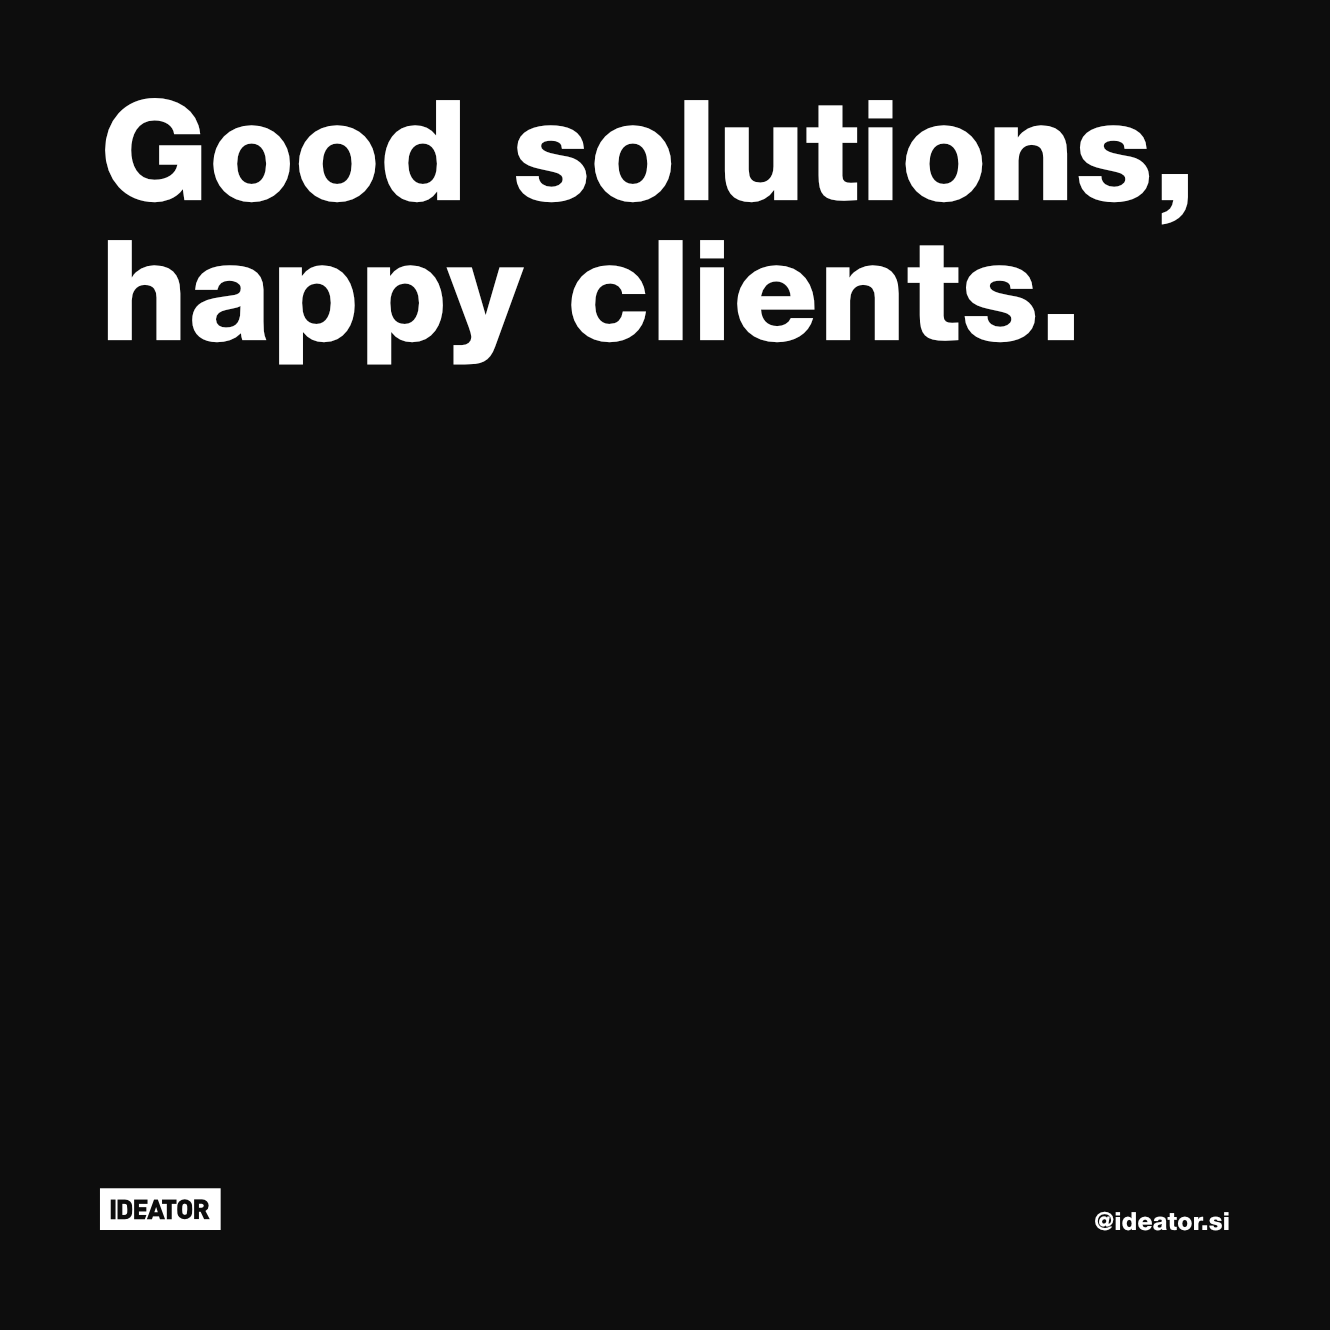 Good solutions, happy clients.